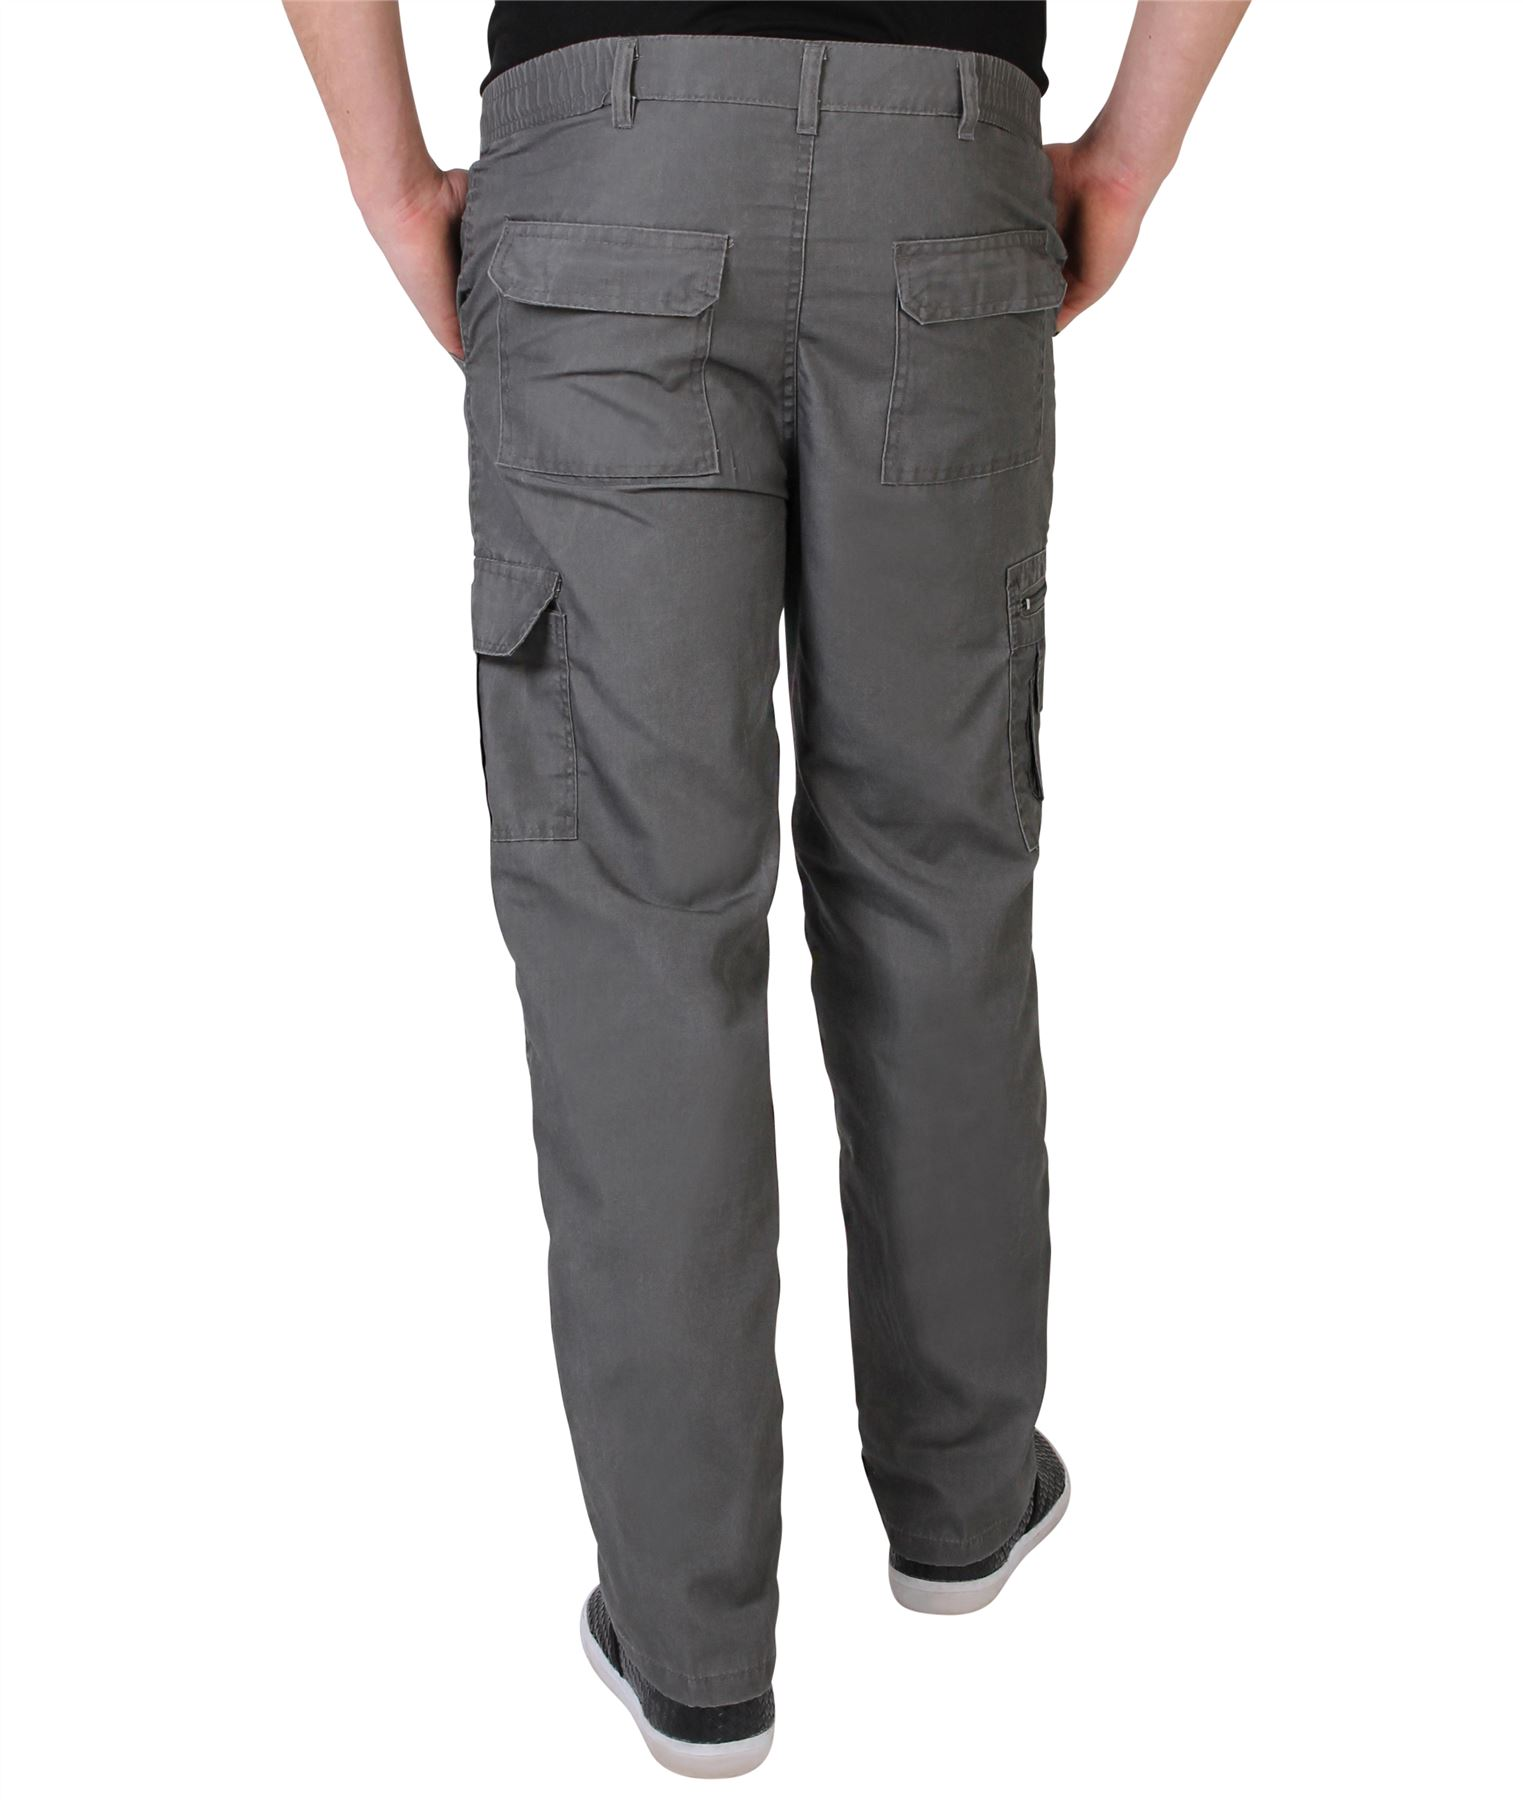 Mens-Army-Cargo-Trousers-Cotton-Combat-Pants-Military-Work-Chinos-Casual-Khakis thumbnail 13